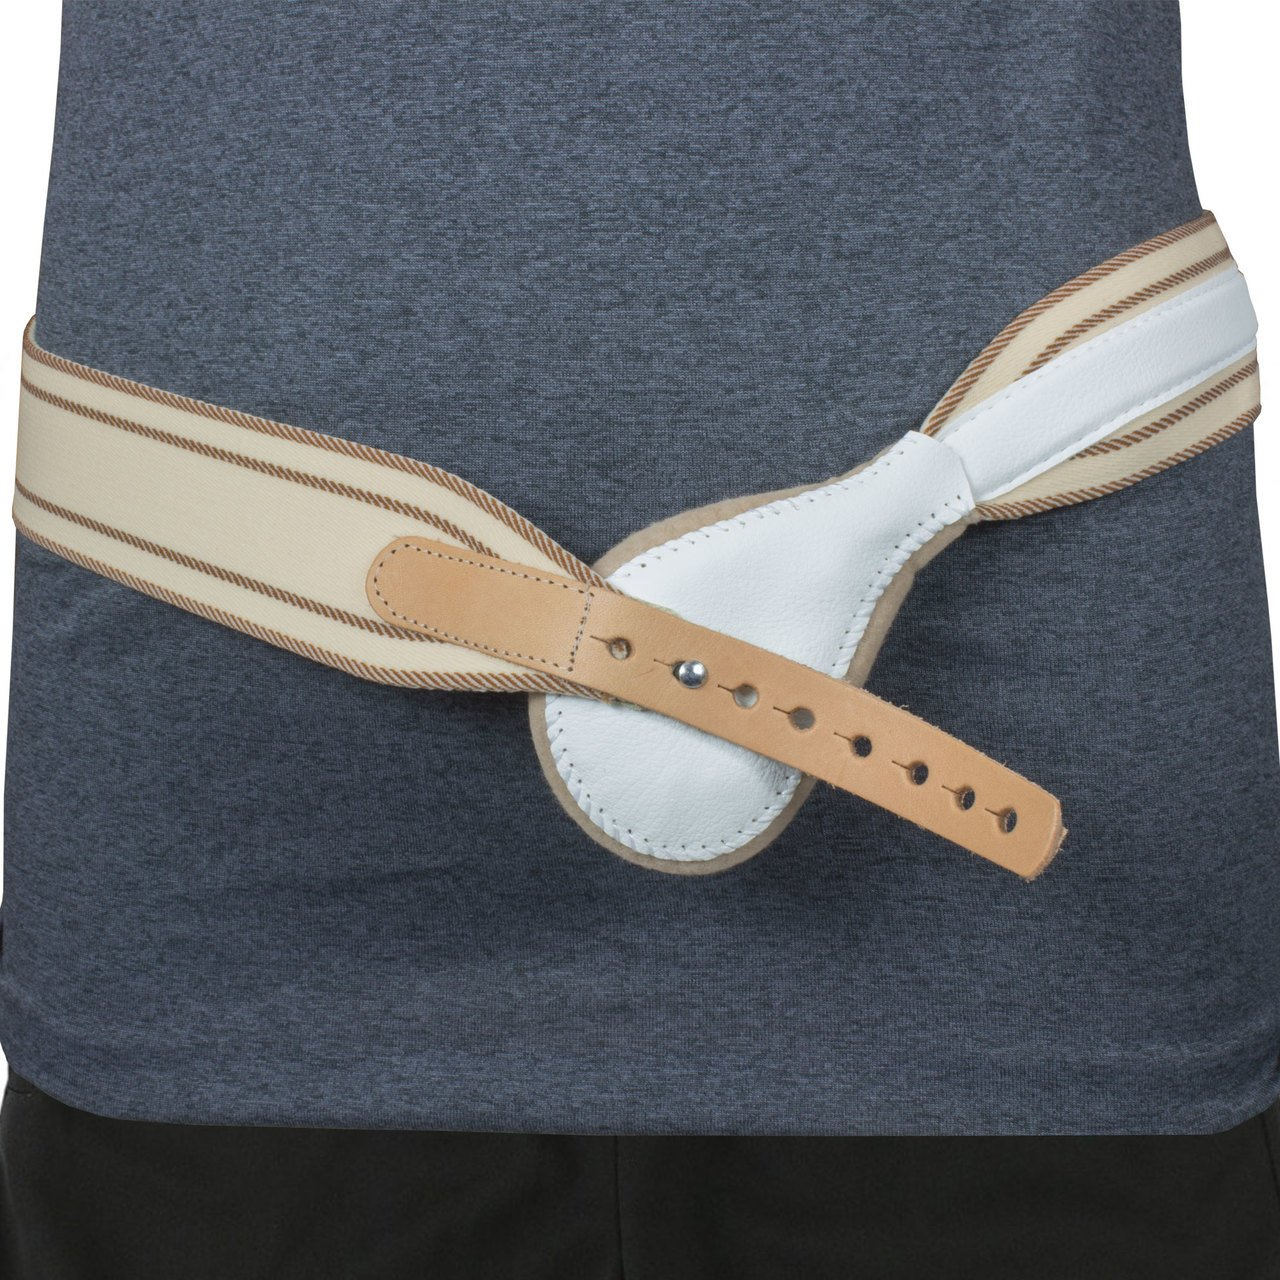 Spring Elastic Hernia Truss Compression Controlled Pressure with Round Hernia Pad (Left 36'')